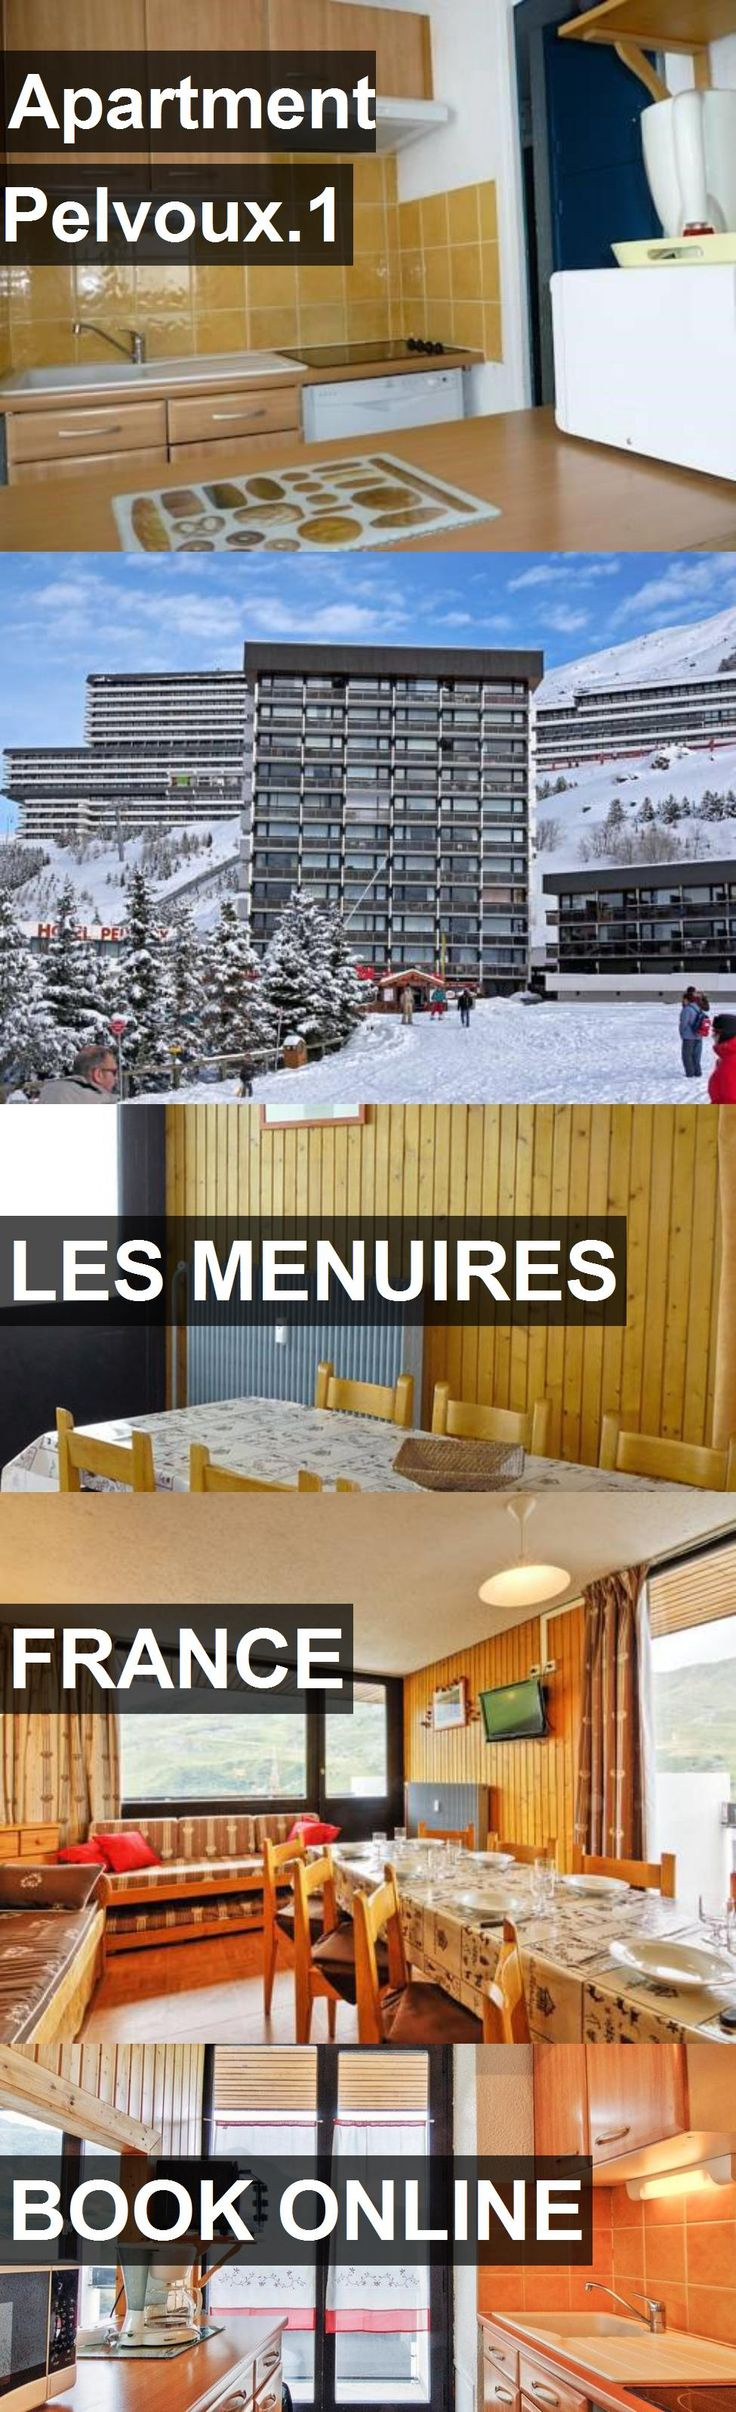 Apartment Pelvoux.1 in Les Menuires, France. For more information, photos, reviews and best prices please follow the link. #France #LesMenuires #travel #vacation #apartment